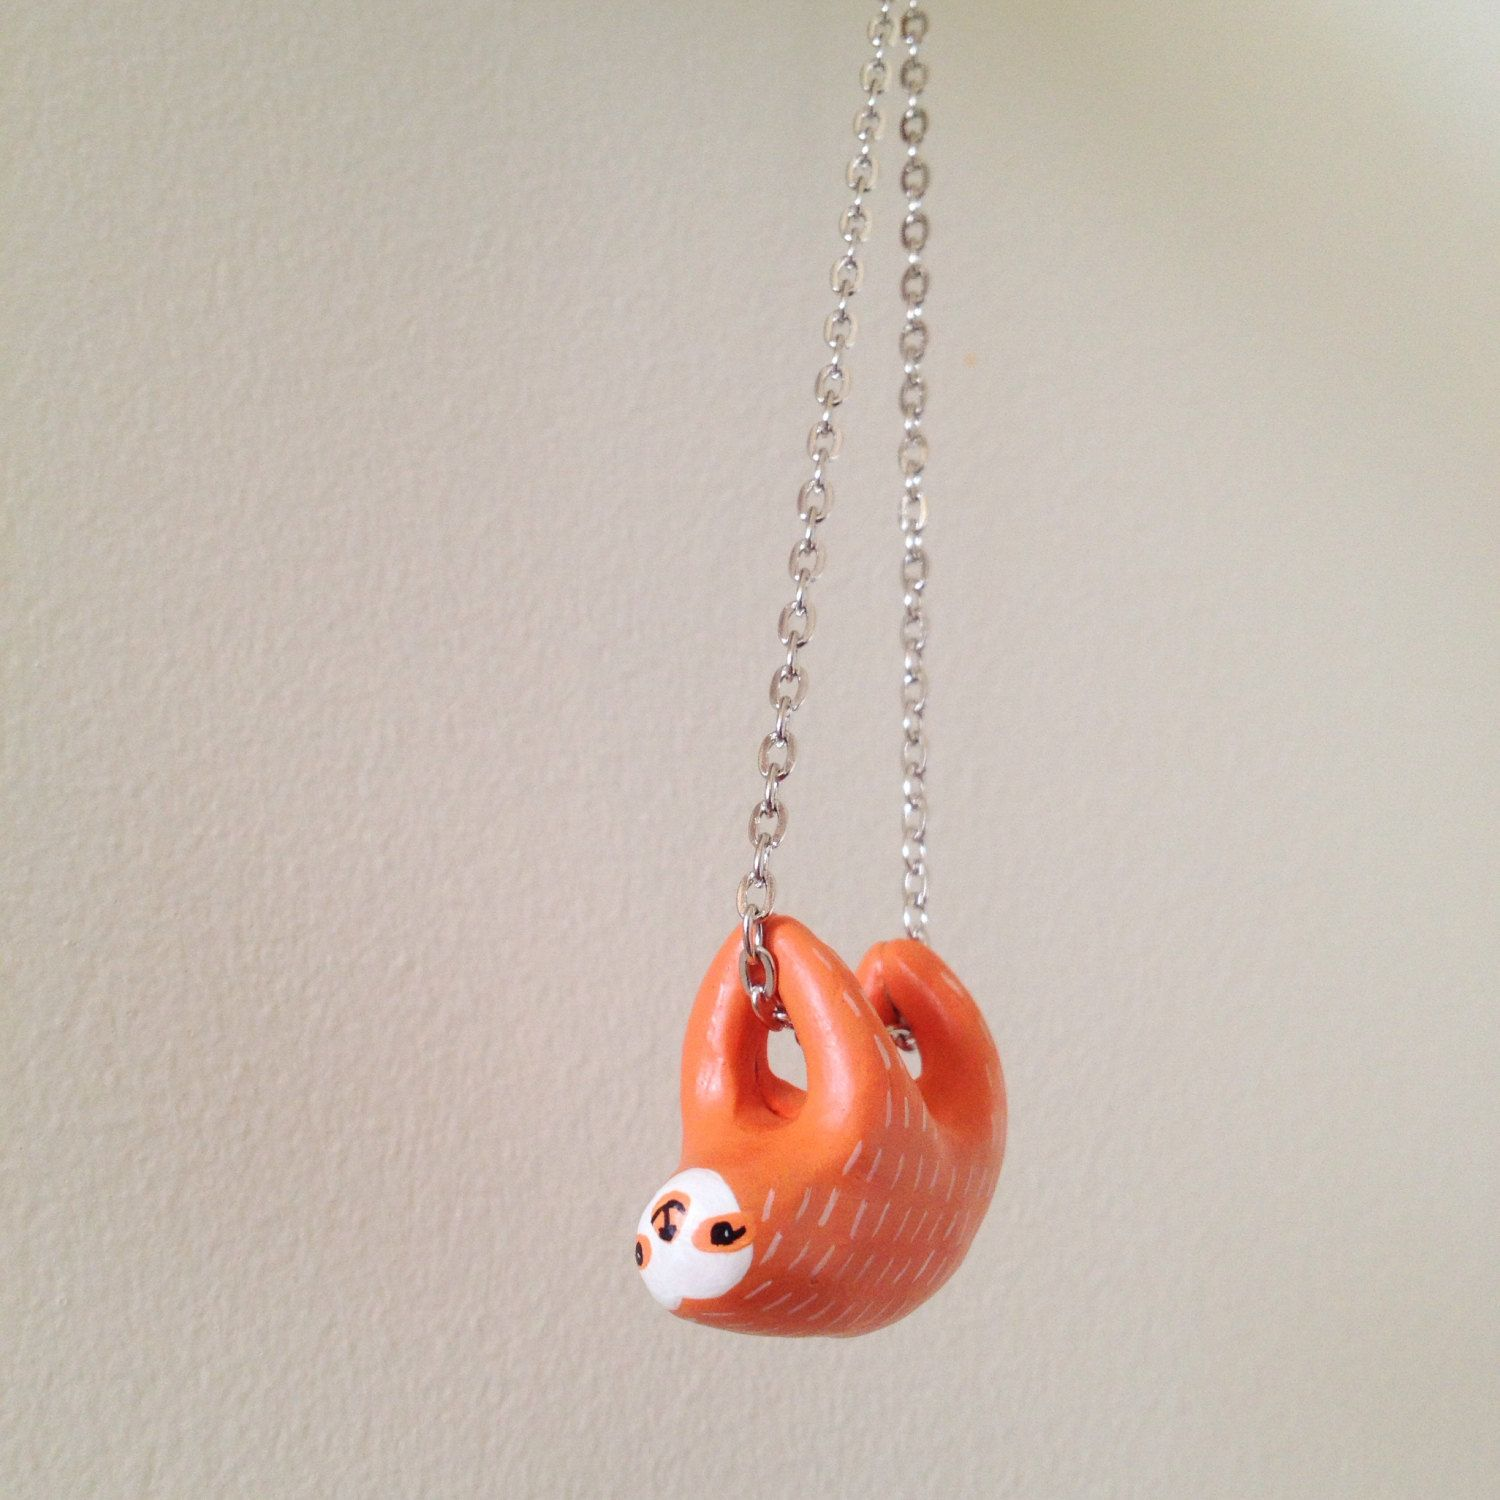 pink us s necklace sloth claire pendant